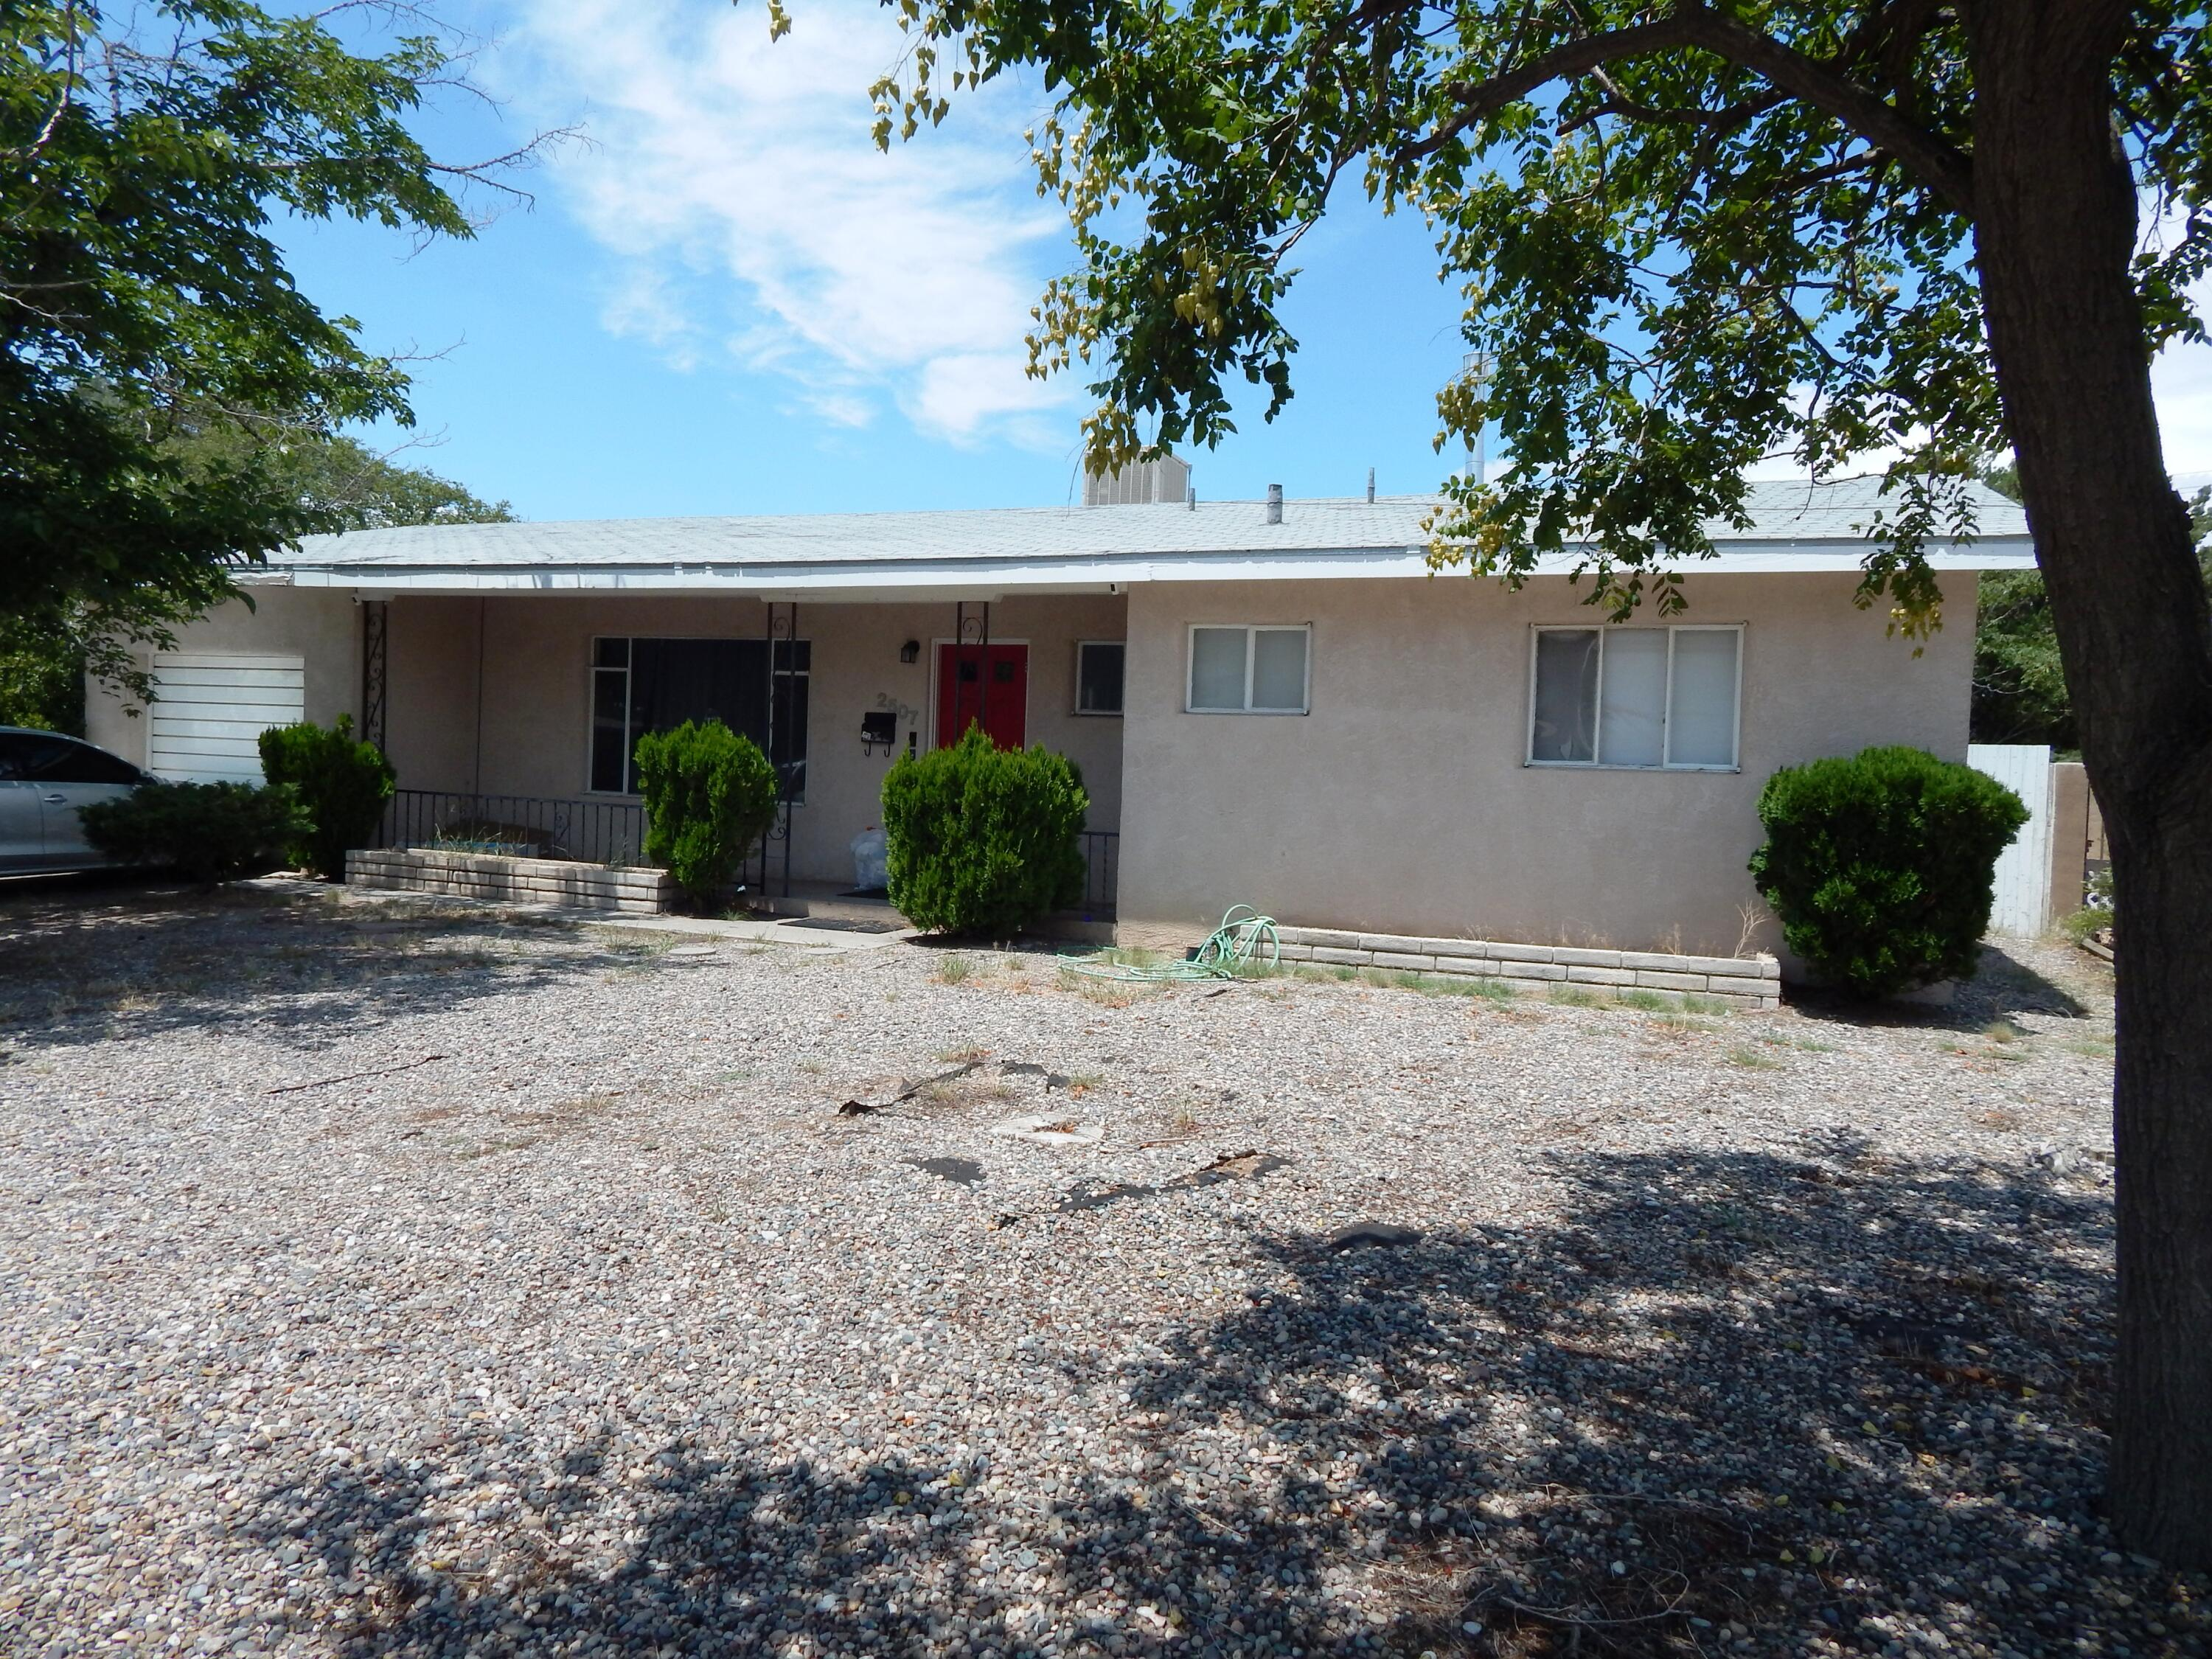 A Great Location and Close to UNM at a good price. Home is being sold as is and is available for a Renovation Loan. Seller will not pay for repairs or updates, with a Renovation Loan you can have it done your way. (If Needed, Information on Renovation Loans may be requested through Listing Broker by your Realtor)  Large Pool with Water Fall from connected Spa. Lots of Room with 2 Living Areas.( Rent currently collected is not typical for this home, It was a special discount to benefit the current Tenants)